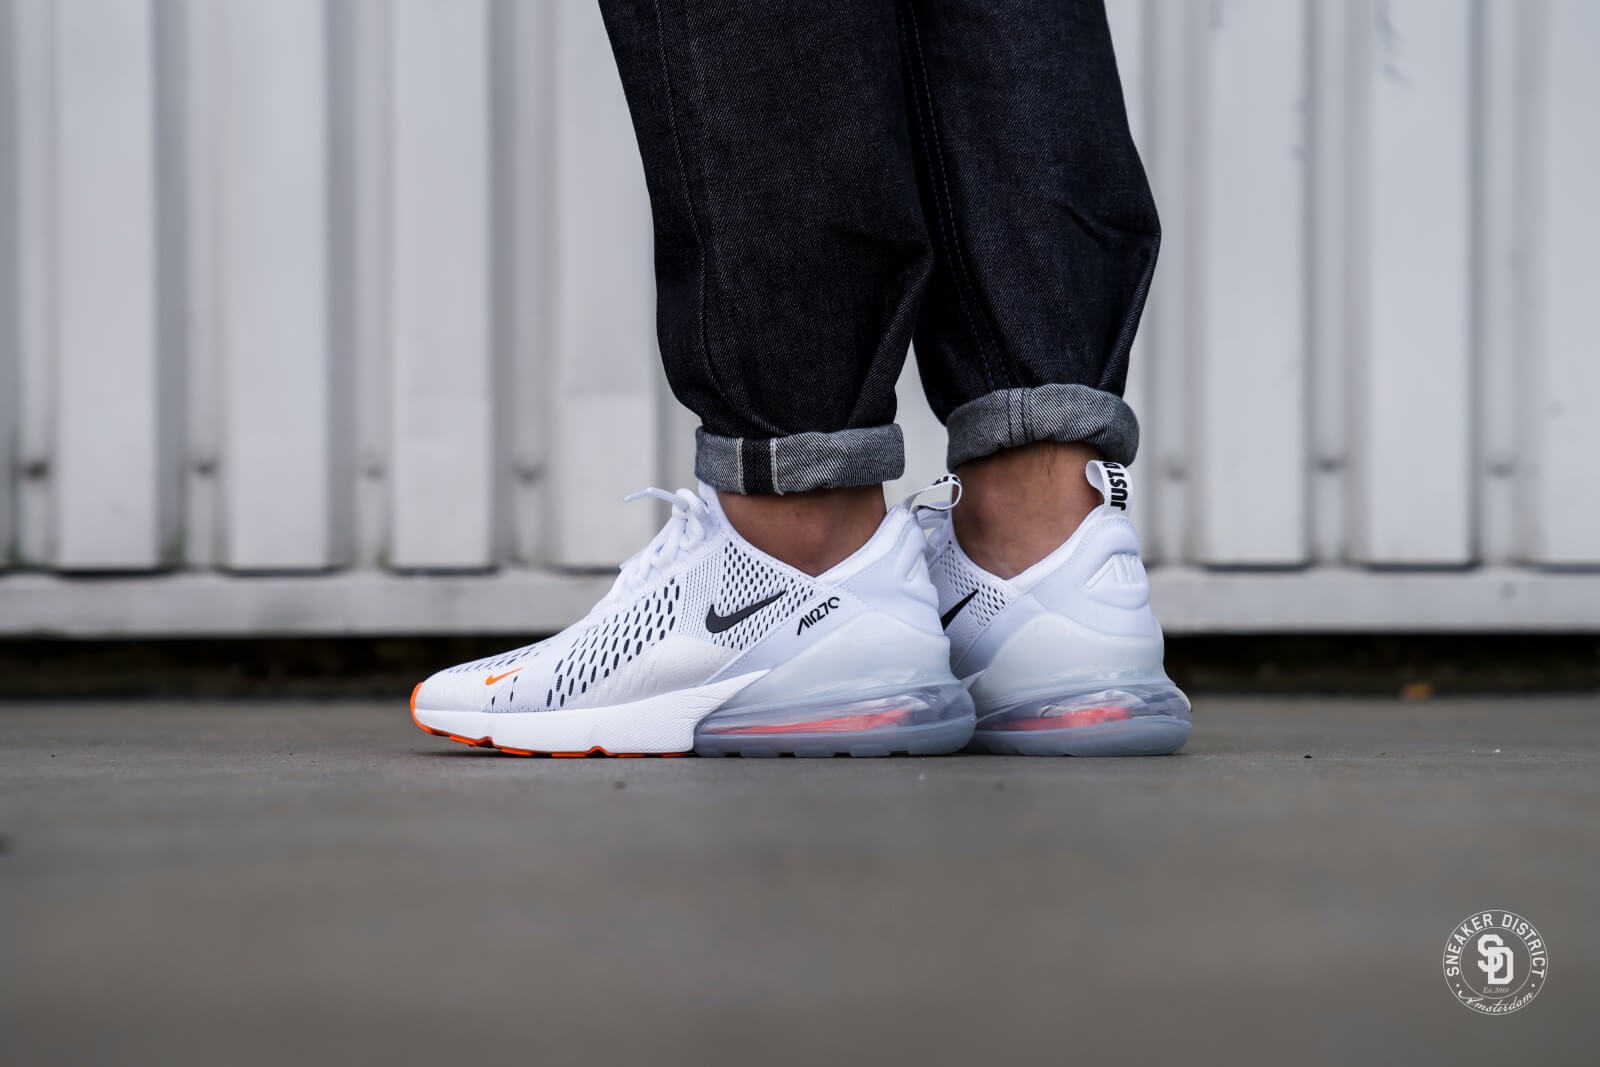 air max 270 (gs) white/safety orange/black/total orange